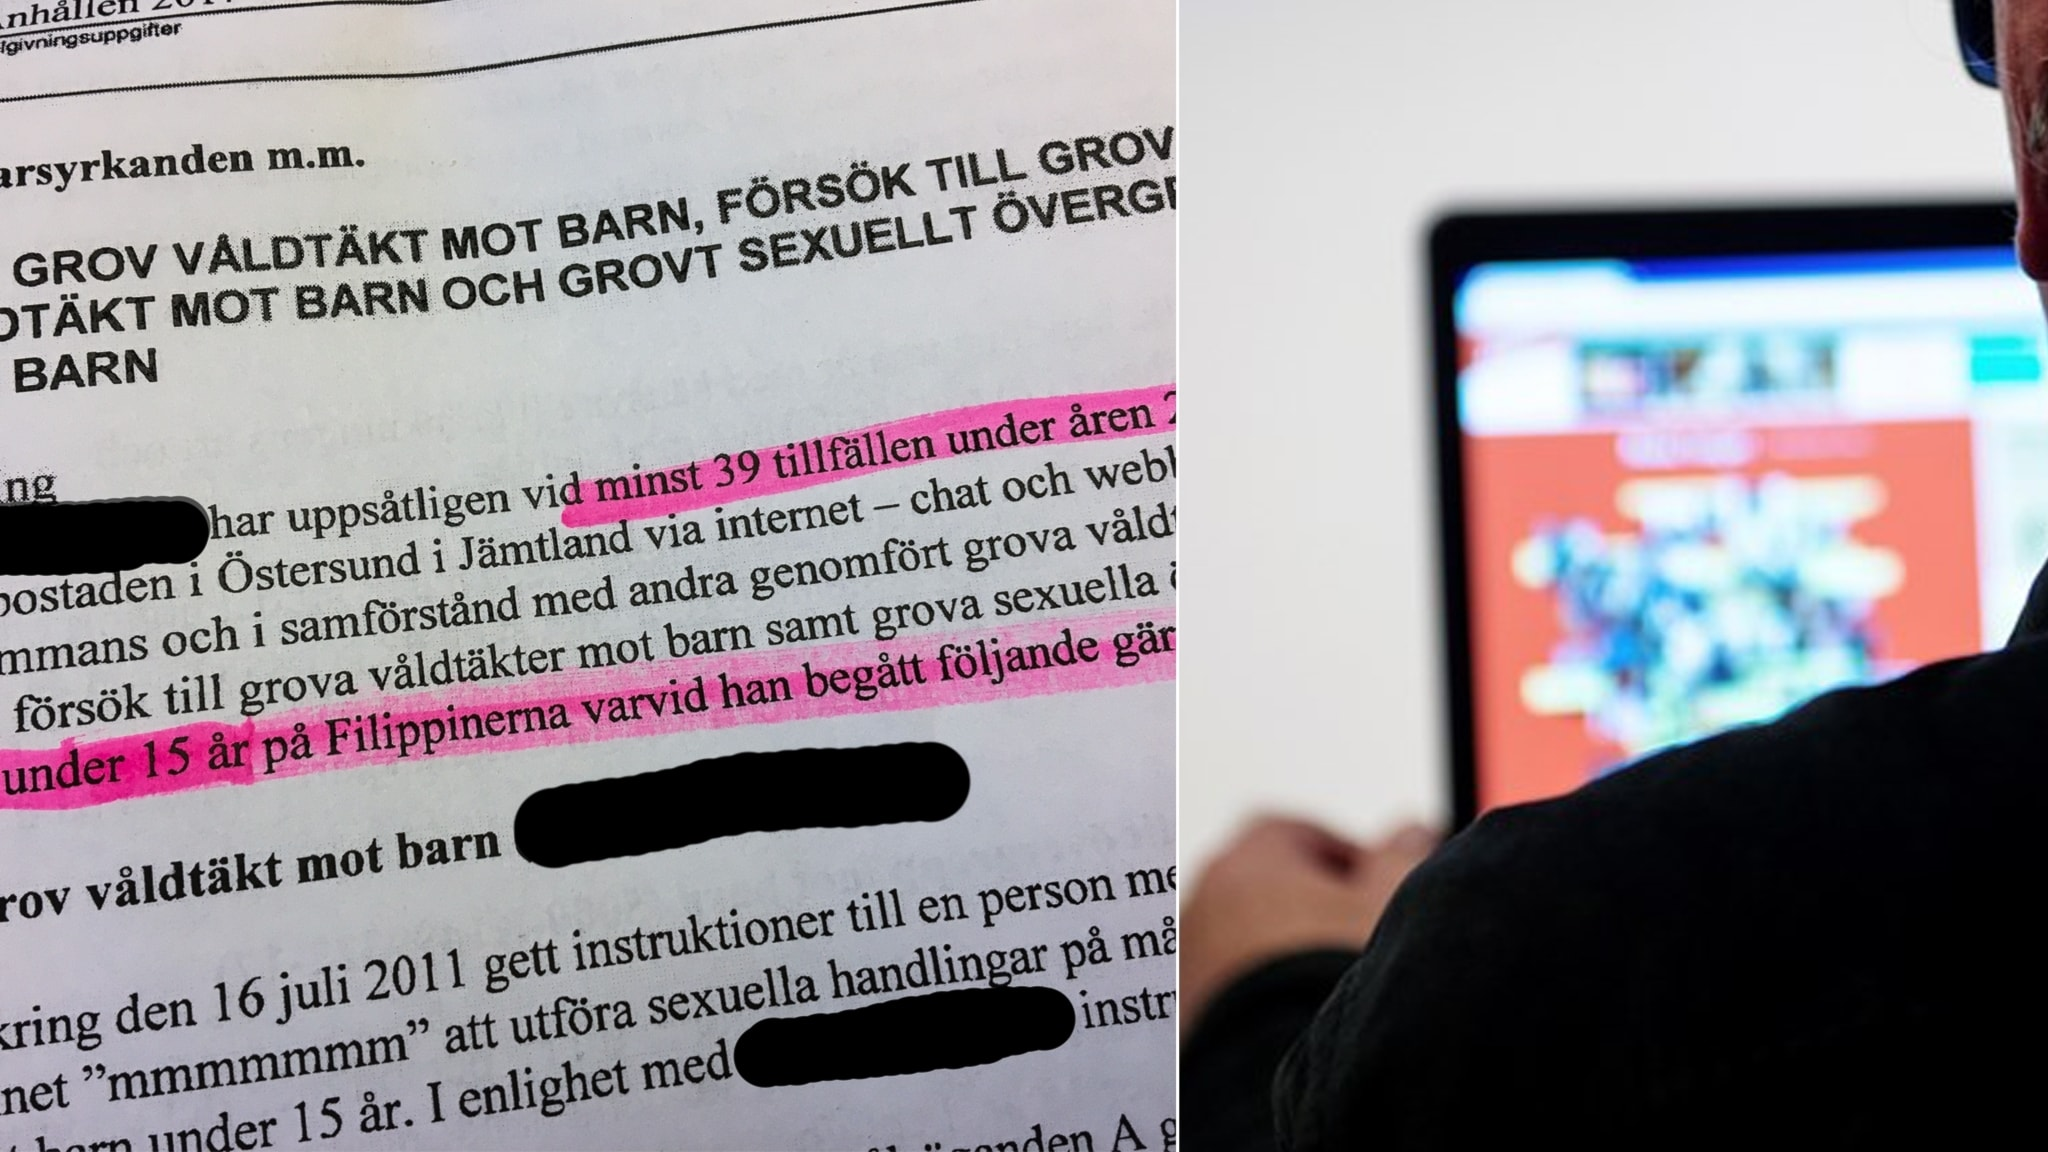 14 ars fangelse for barnvaldtakt via internet